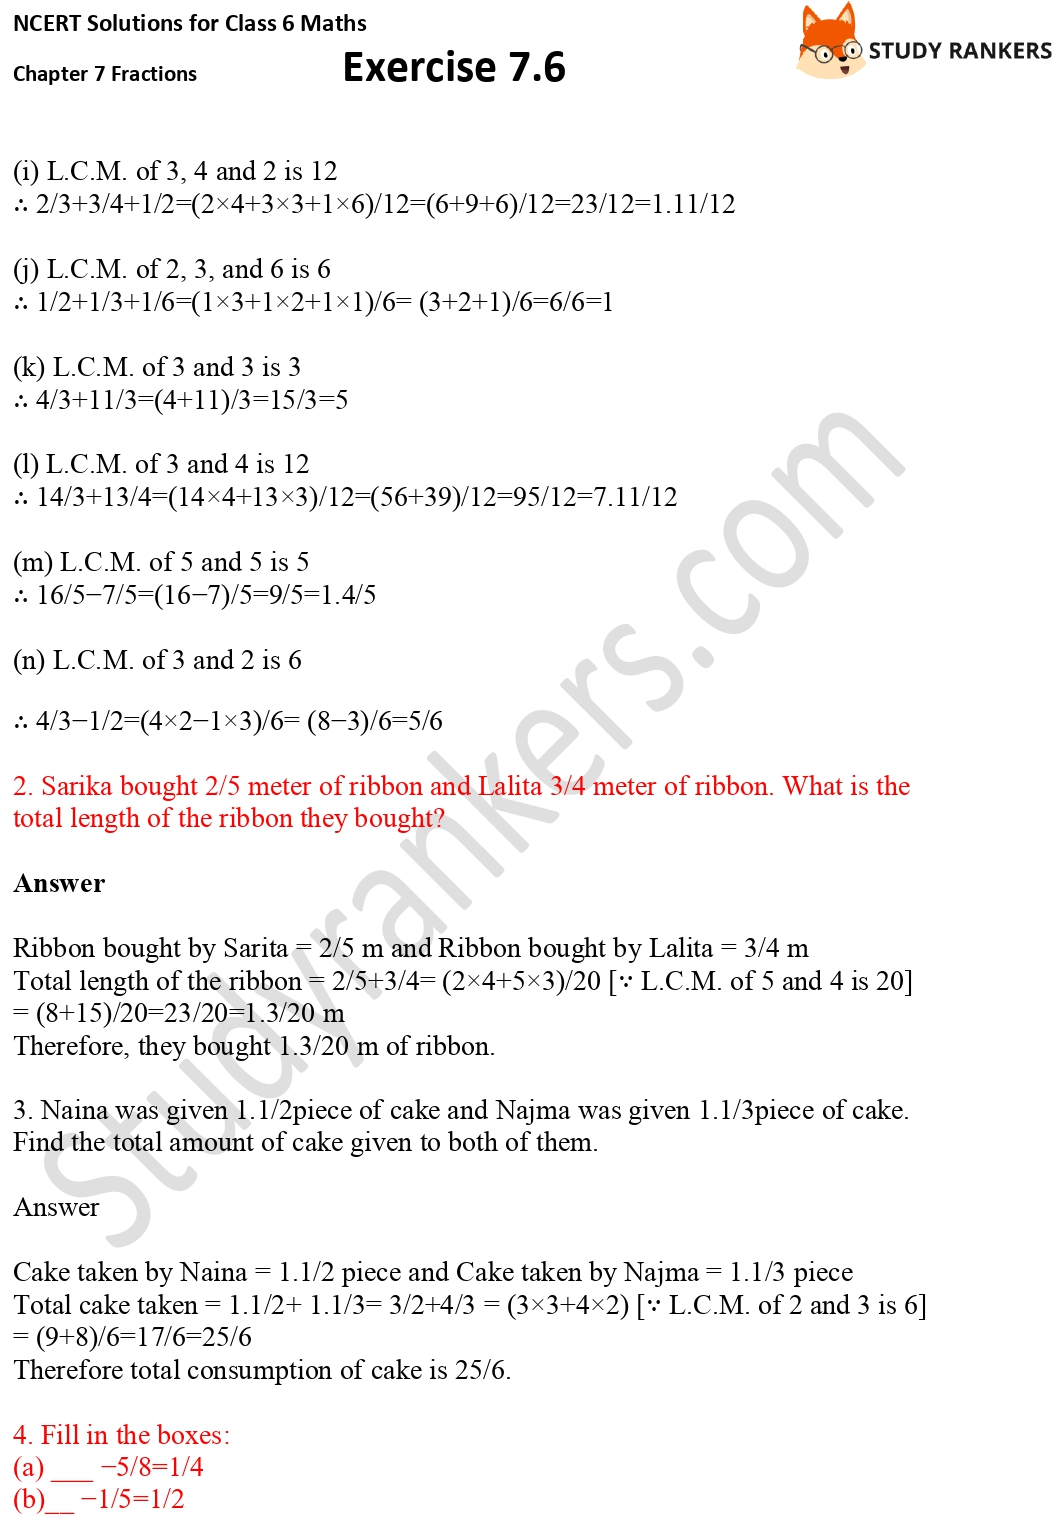 NCERT Solutions for Class 6 Maths Chapter 7 Fractions Exercise 7.6 Part 2